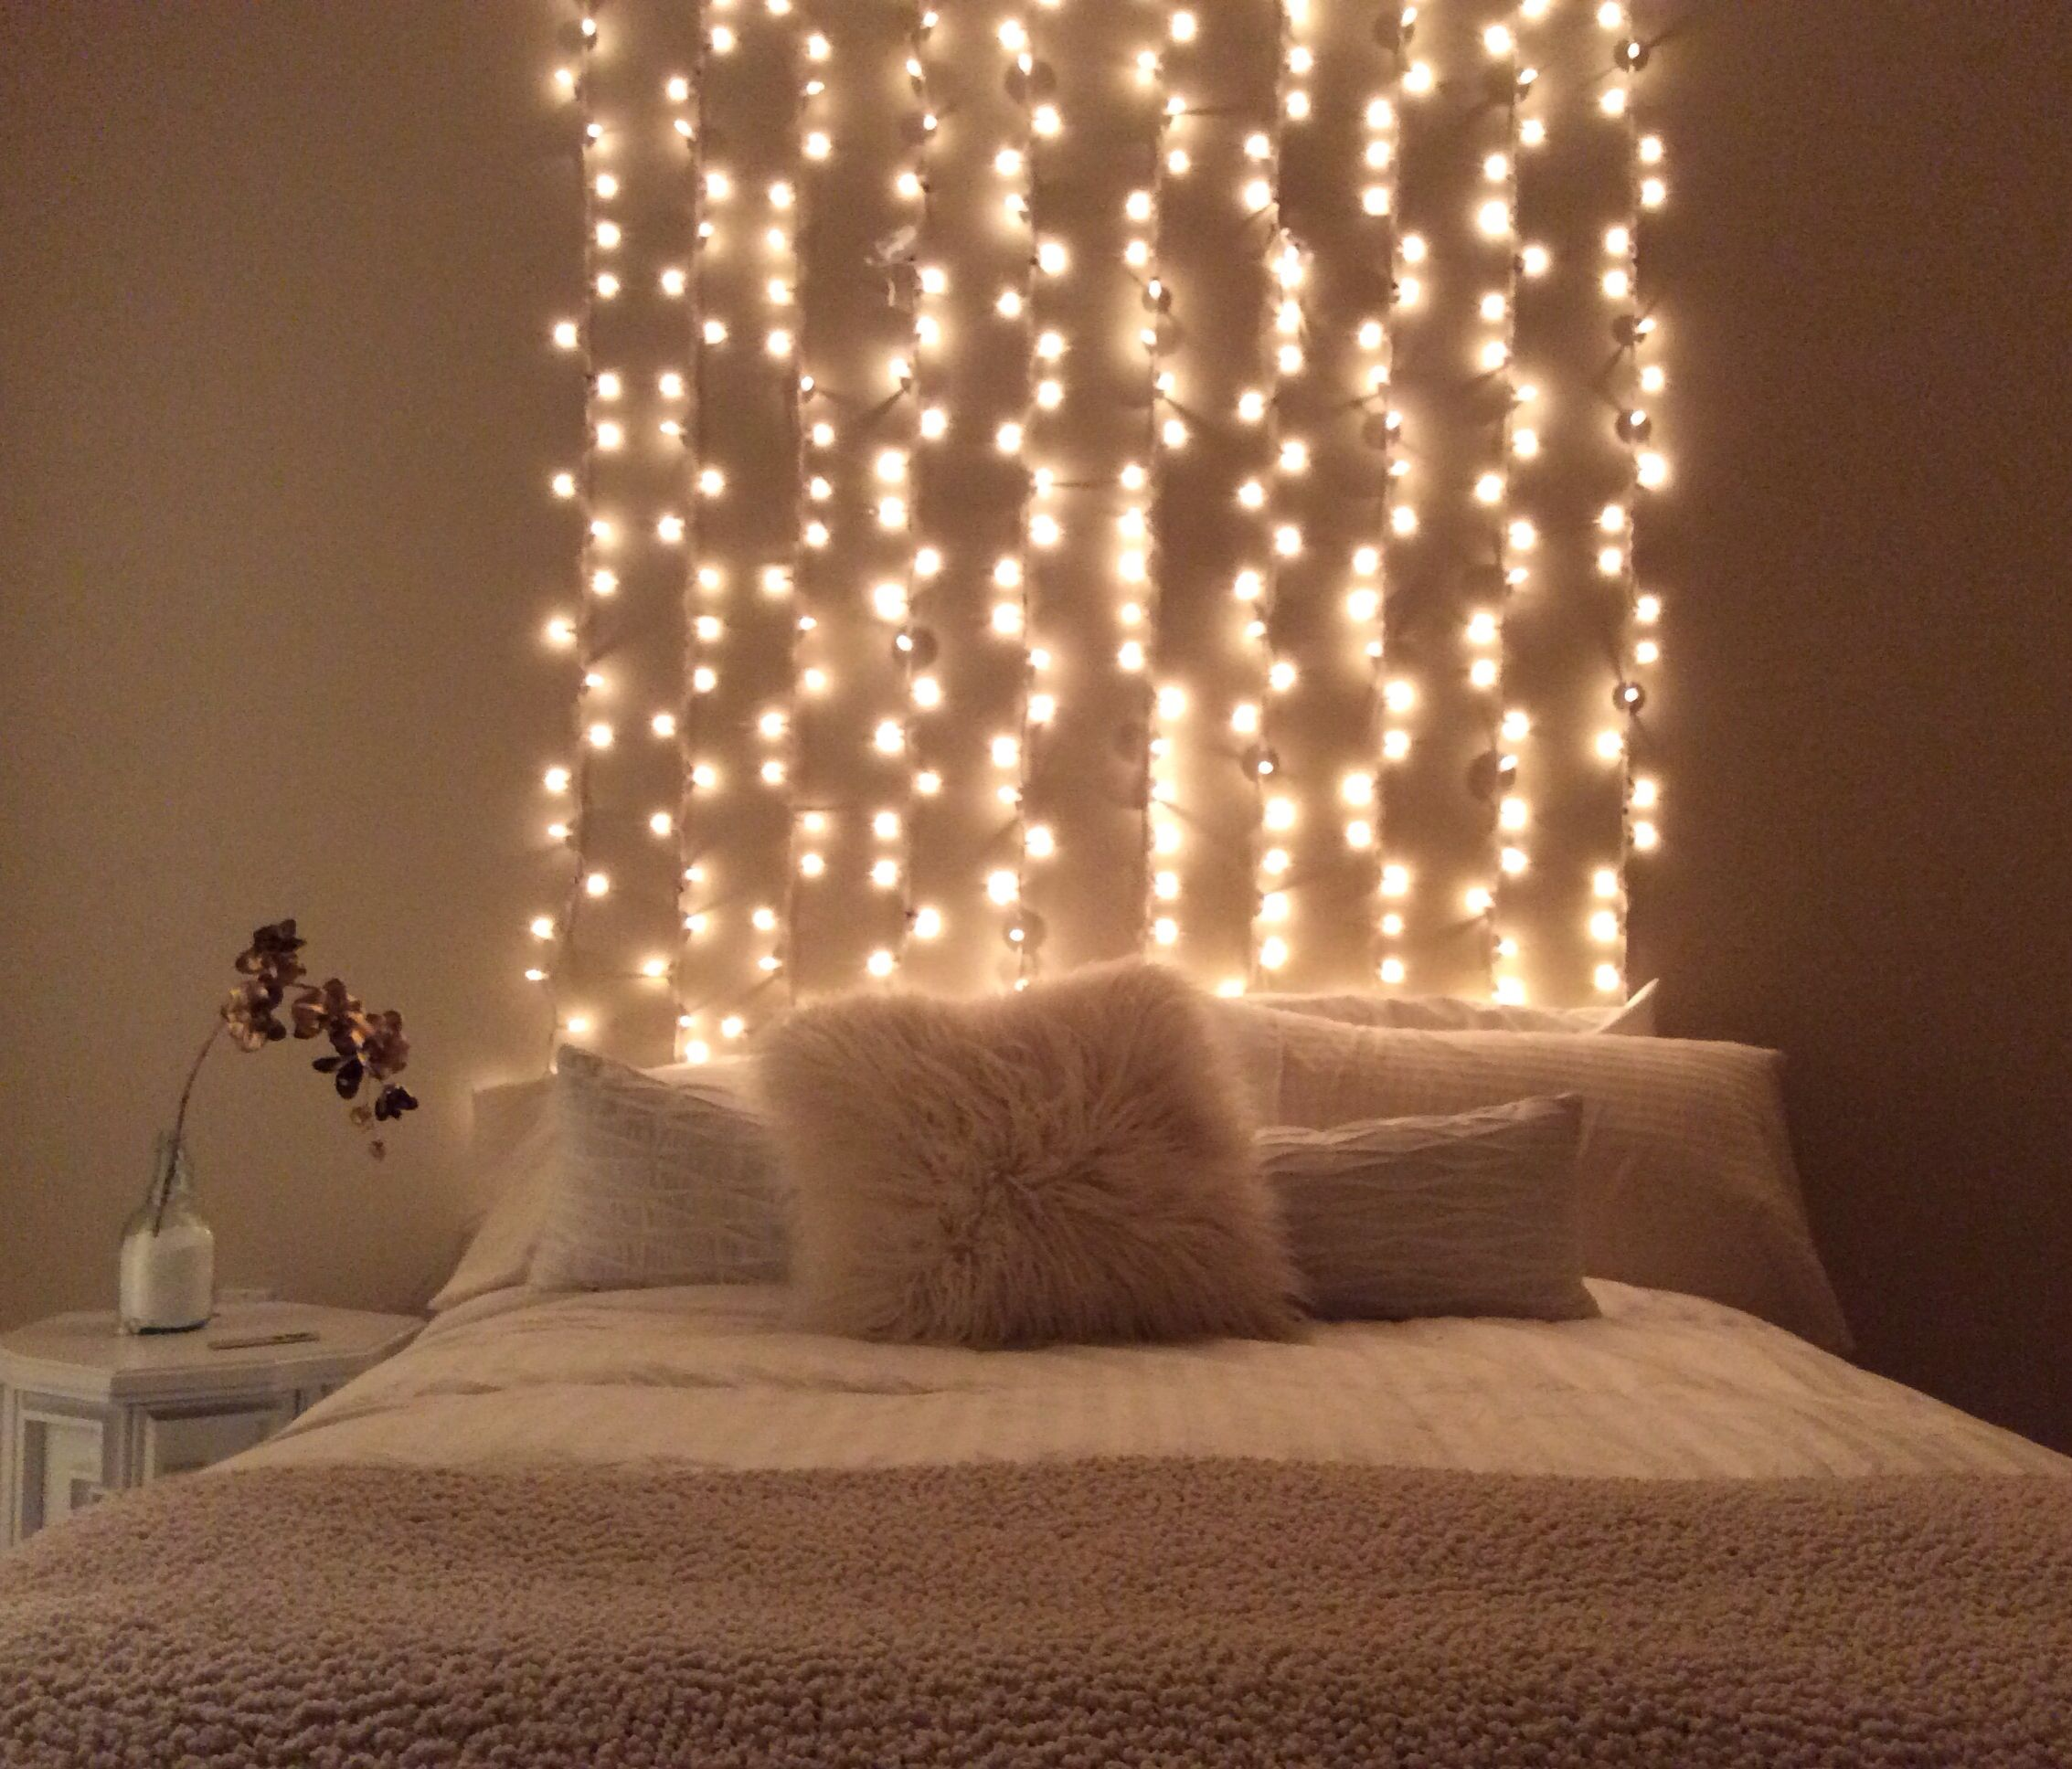 String Lights For Headboard : DIY white string light headboard Home decor Pinterest